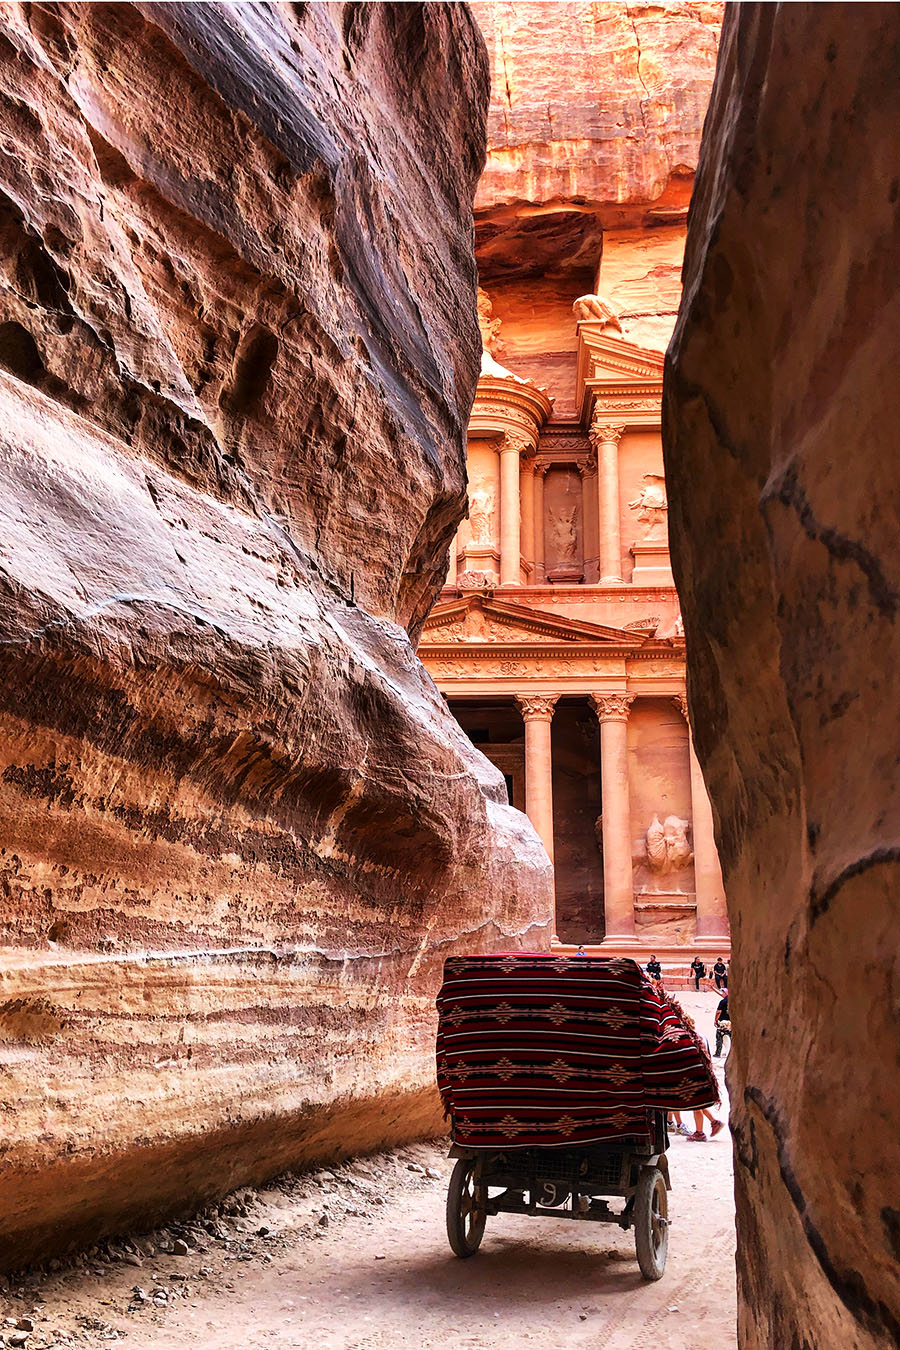 Jordan - Petra Treasury with Horse and Cart